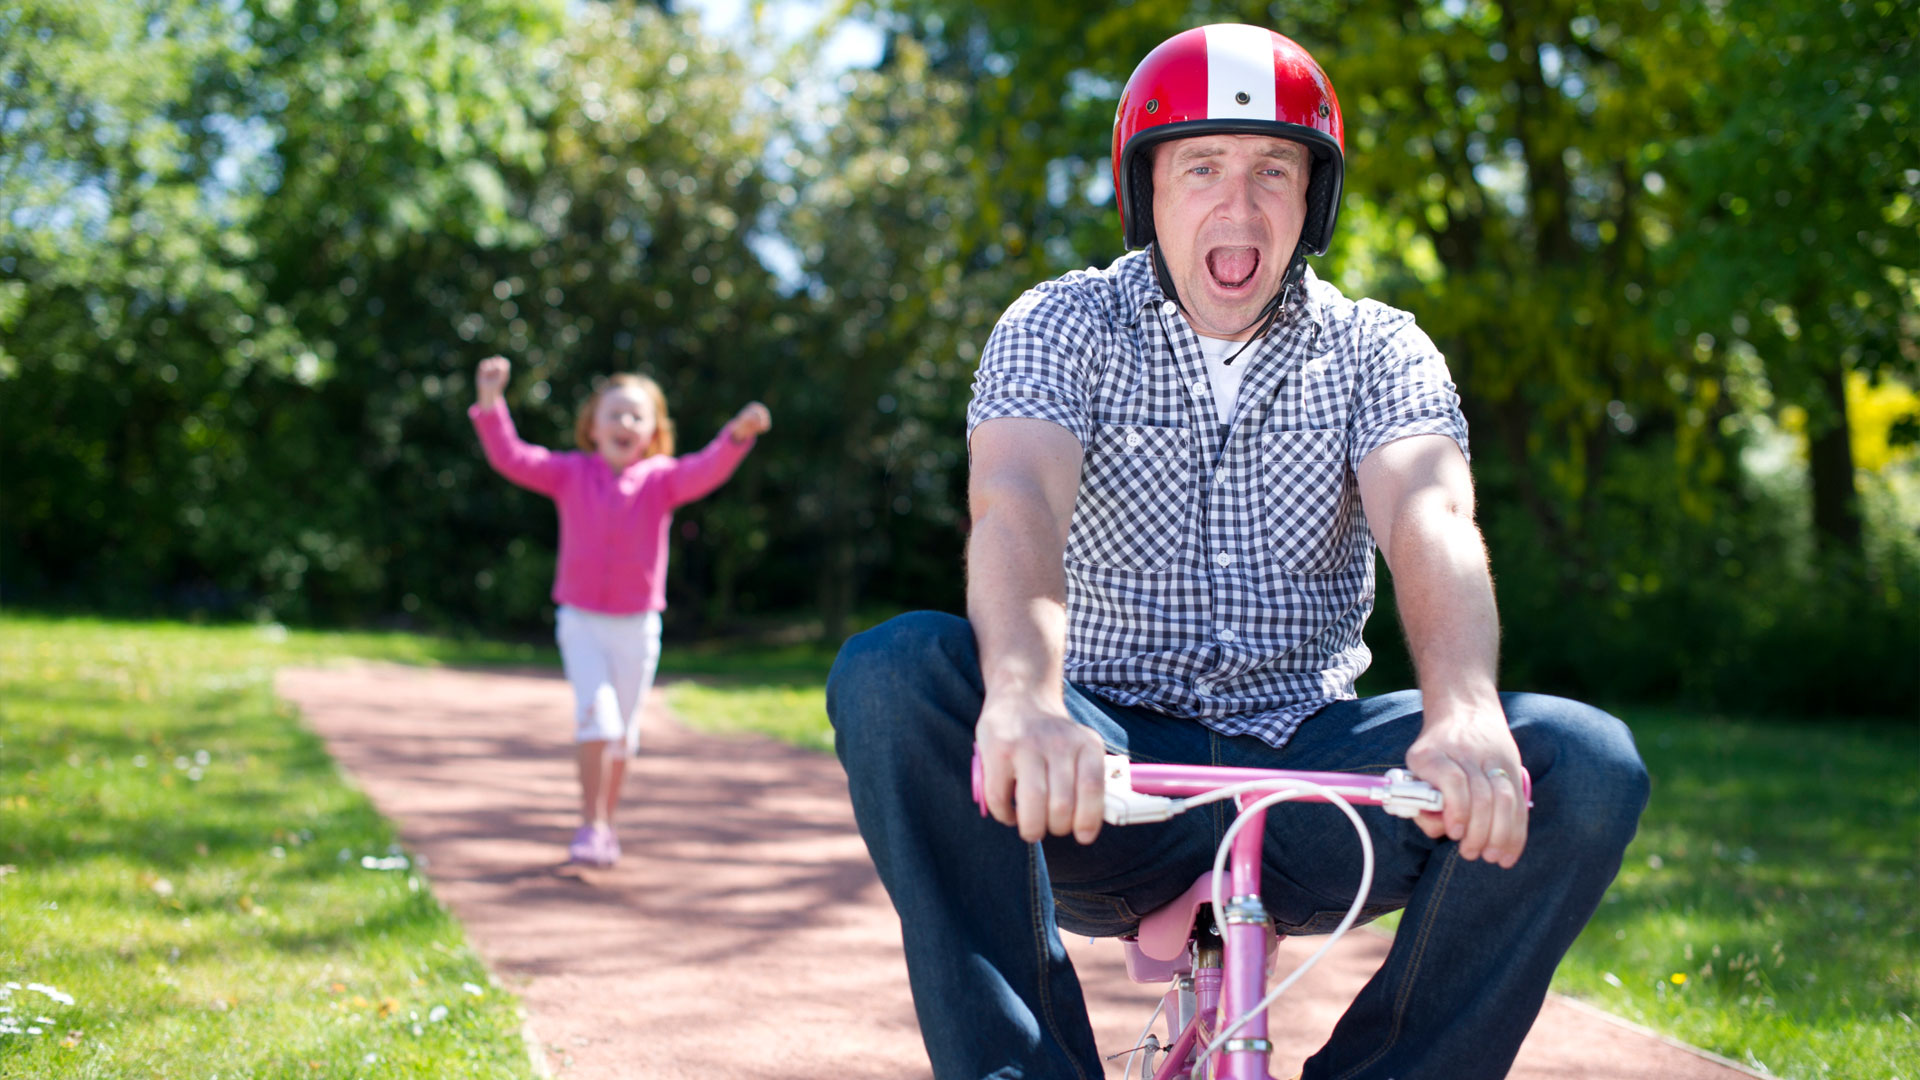 Embrassing Dad on childs bike